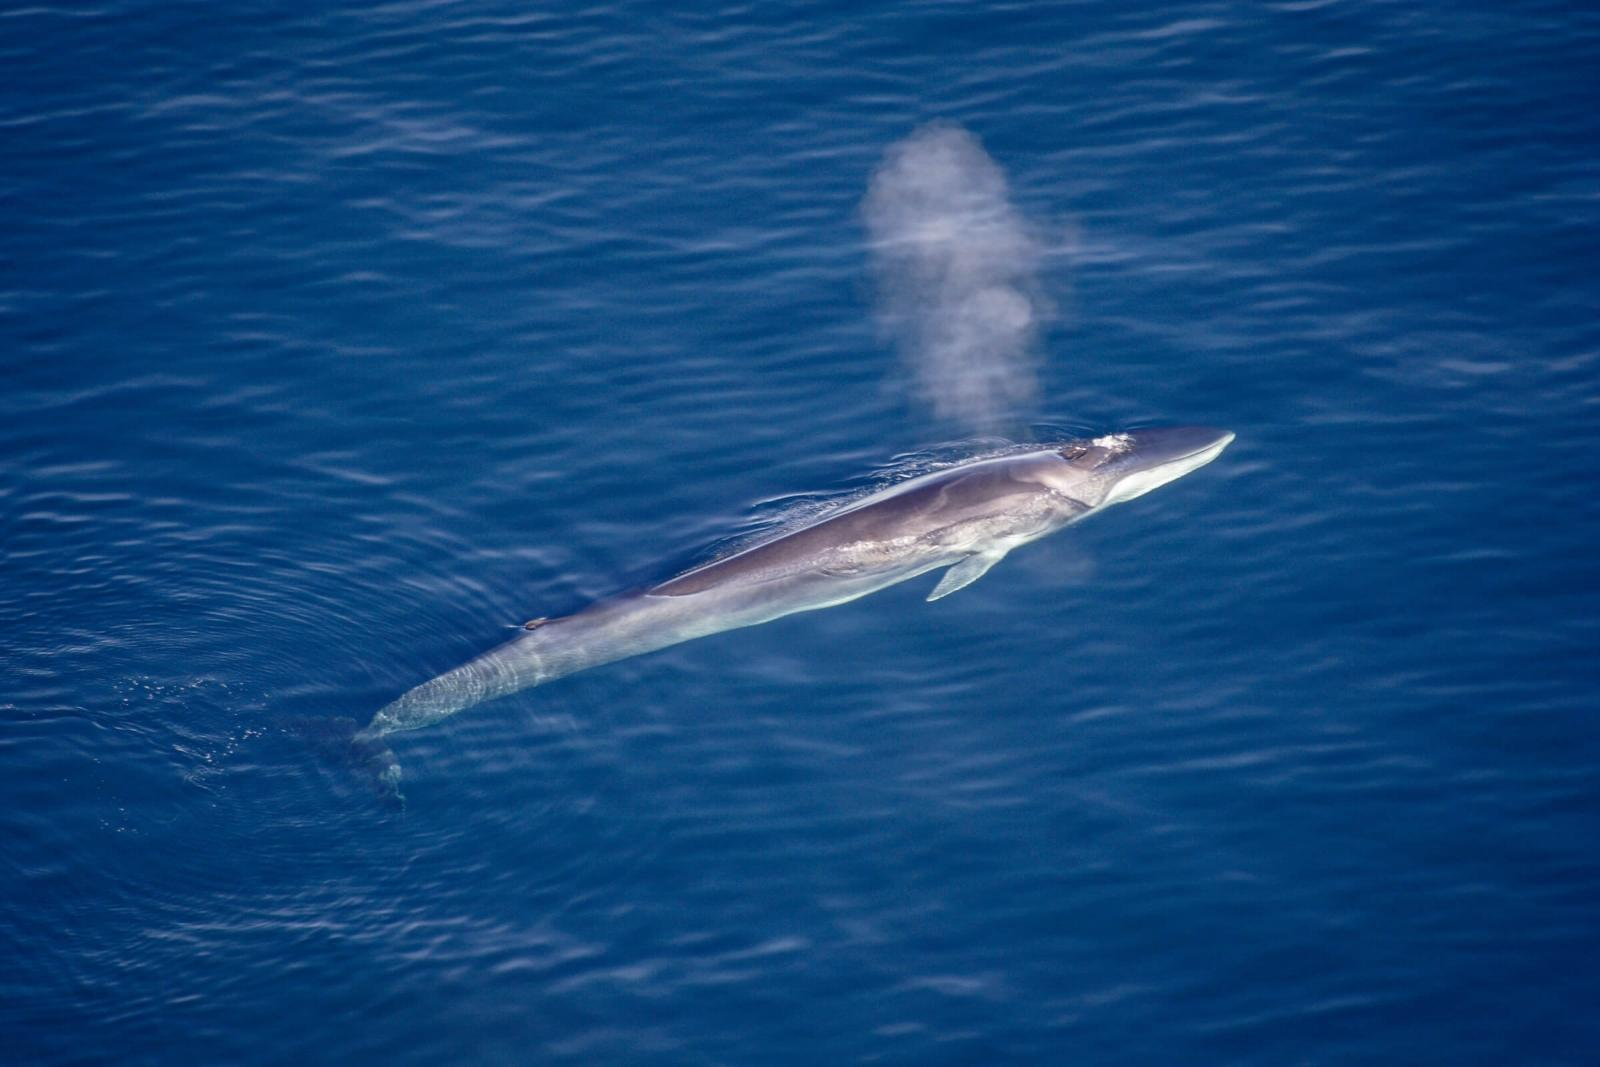 Fin whale breathing. Photo by Aqqa Rosing Asvid.